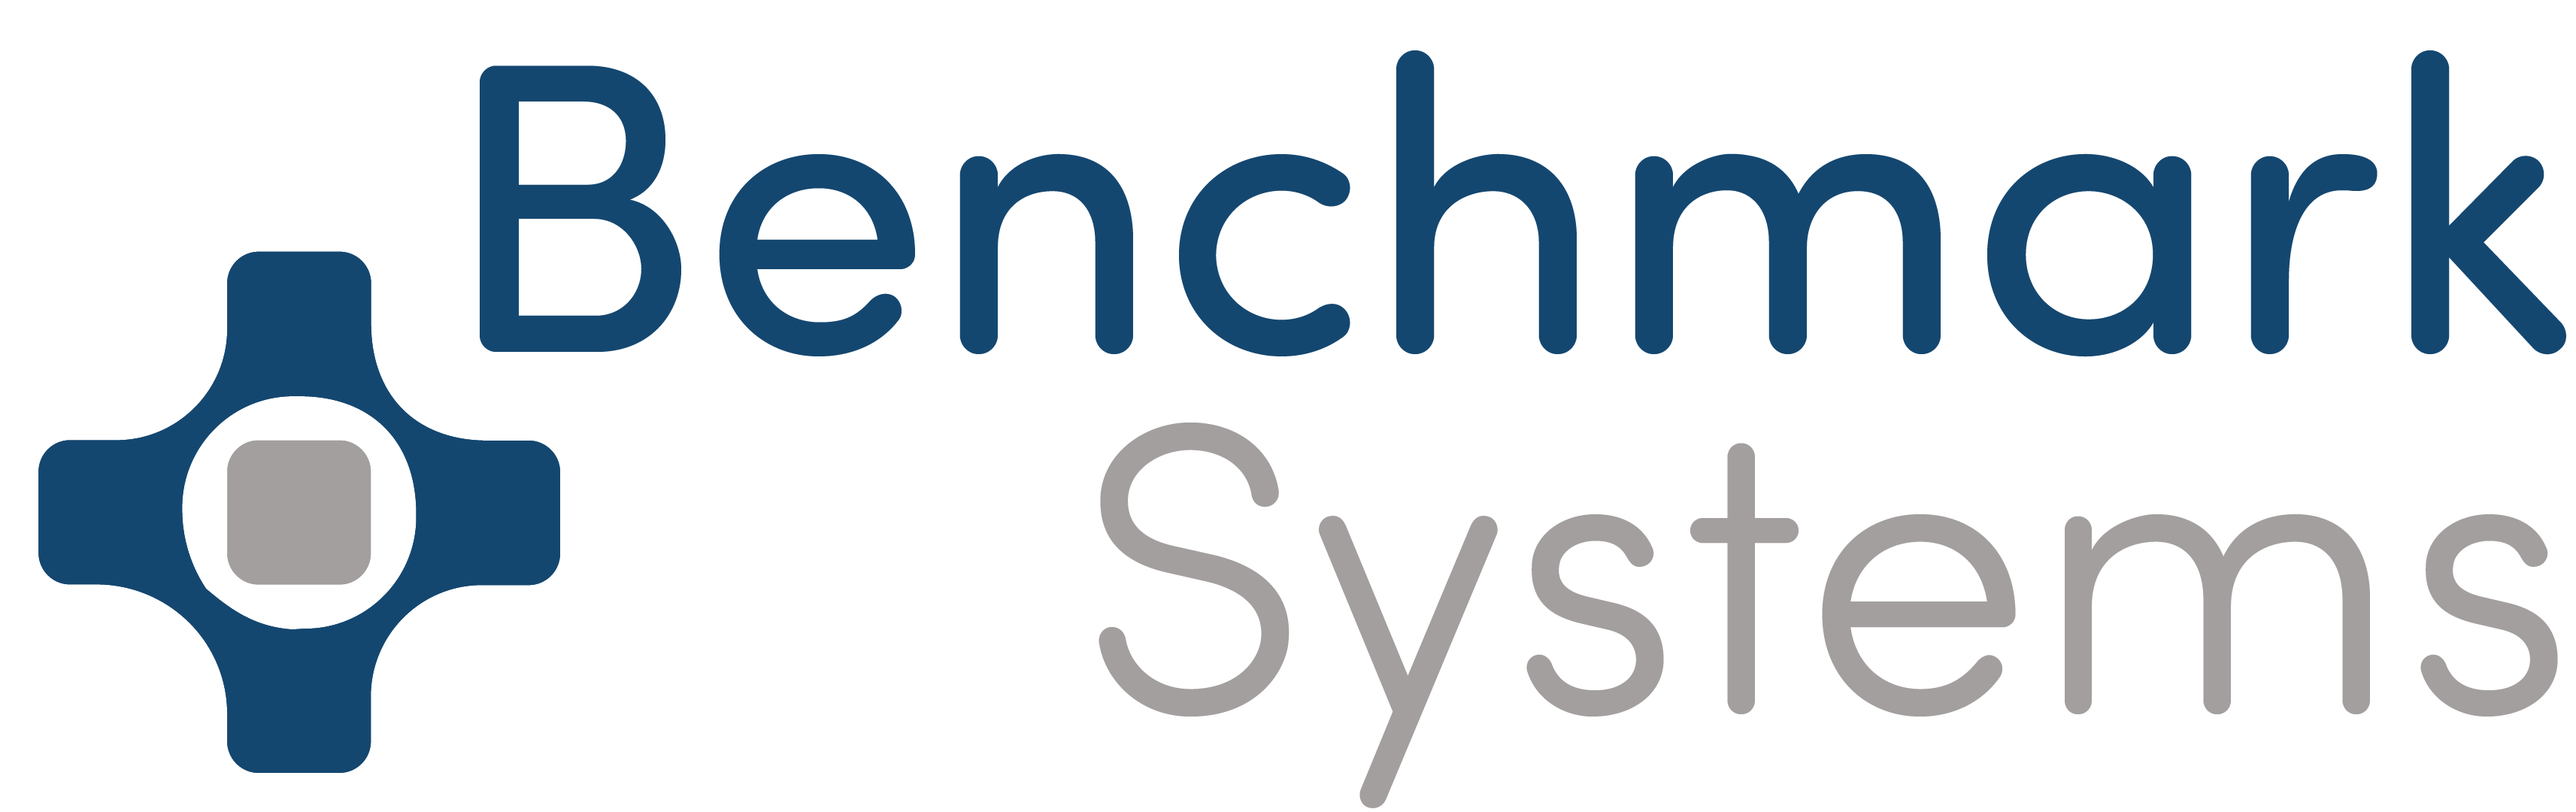 Logotipo de Benchmark Systems